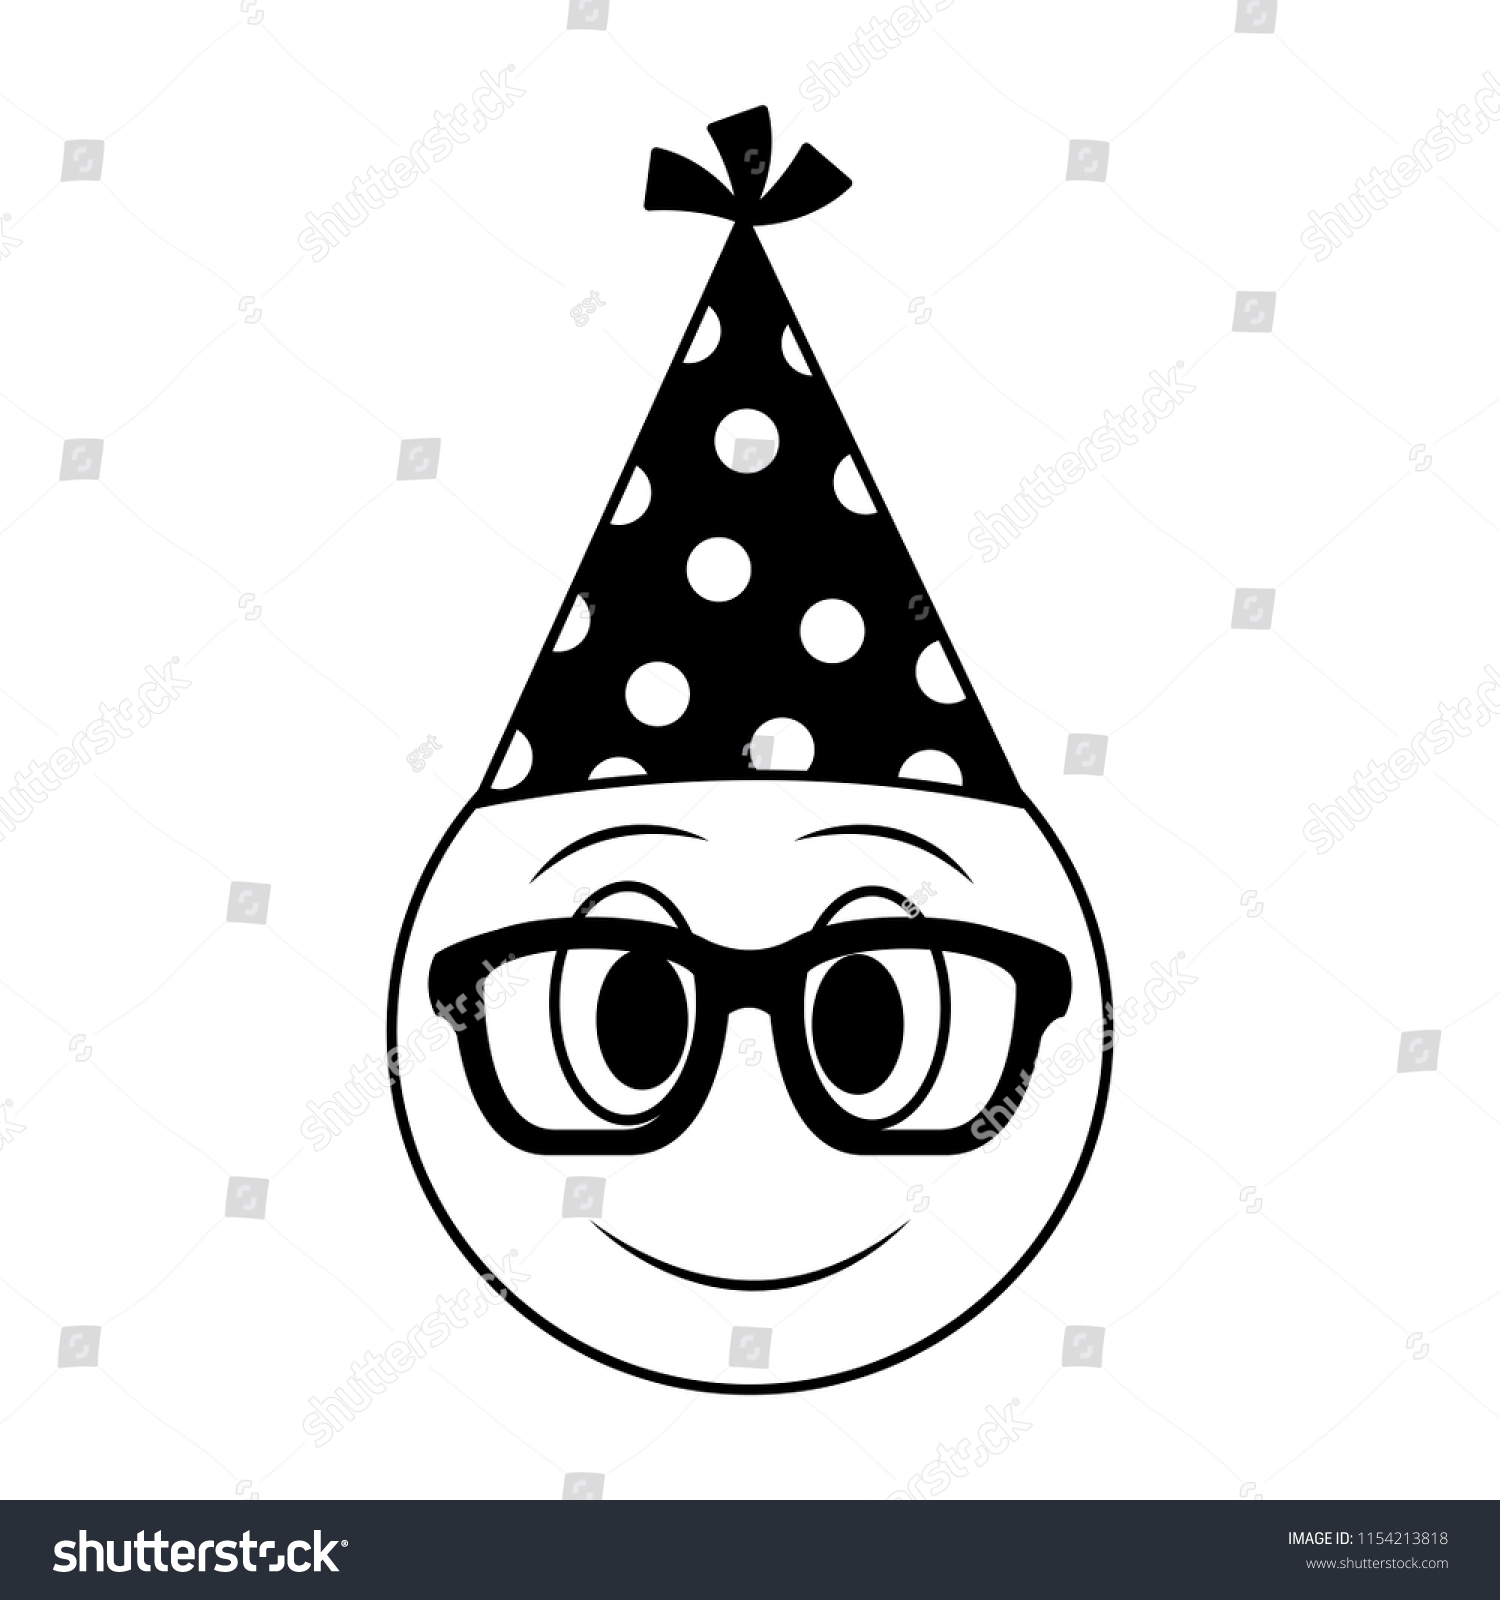 Clip Art Birthday Hat Clipart Black And White - Birthday Party Hat Outline  , Free Transparent Clipart - ClipartKey